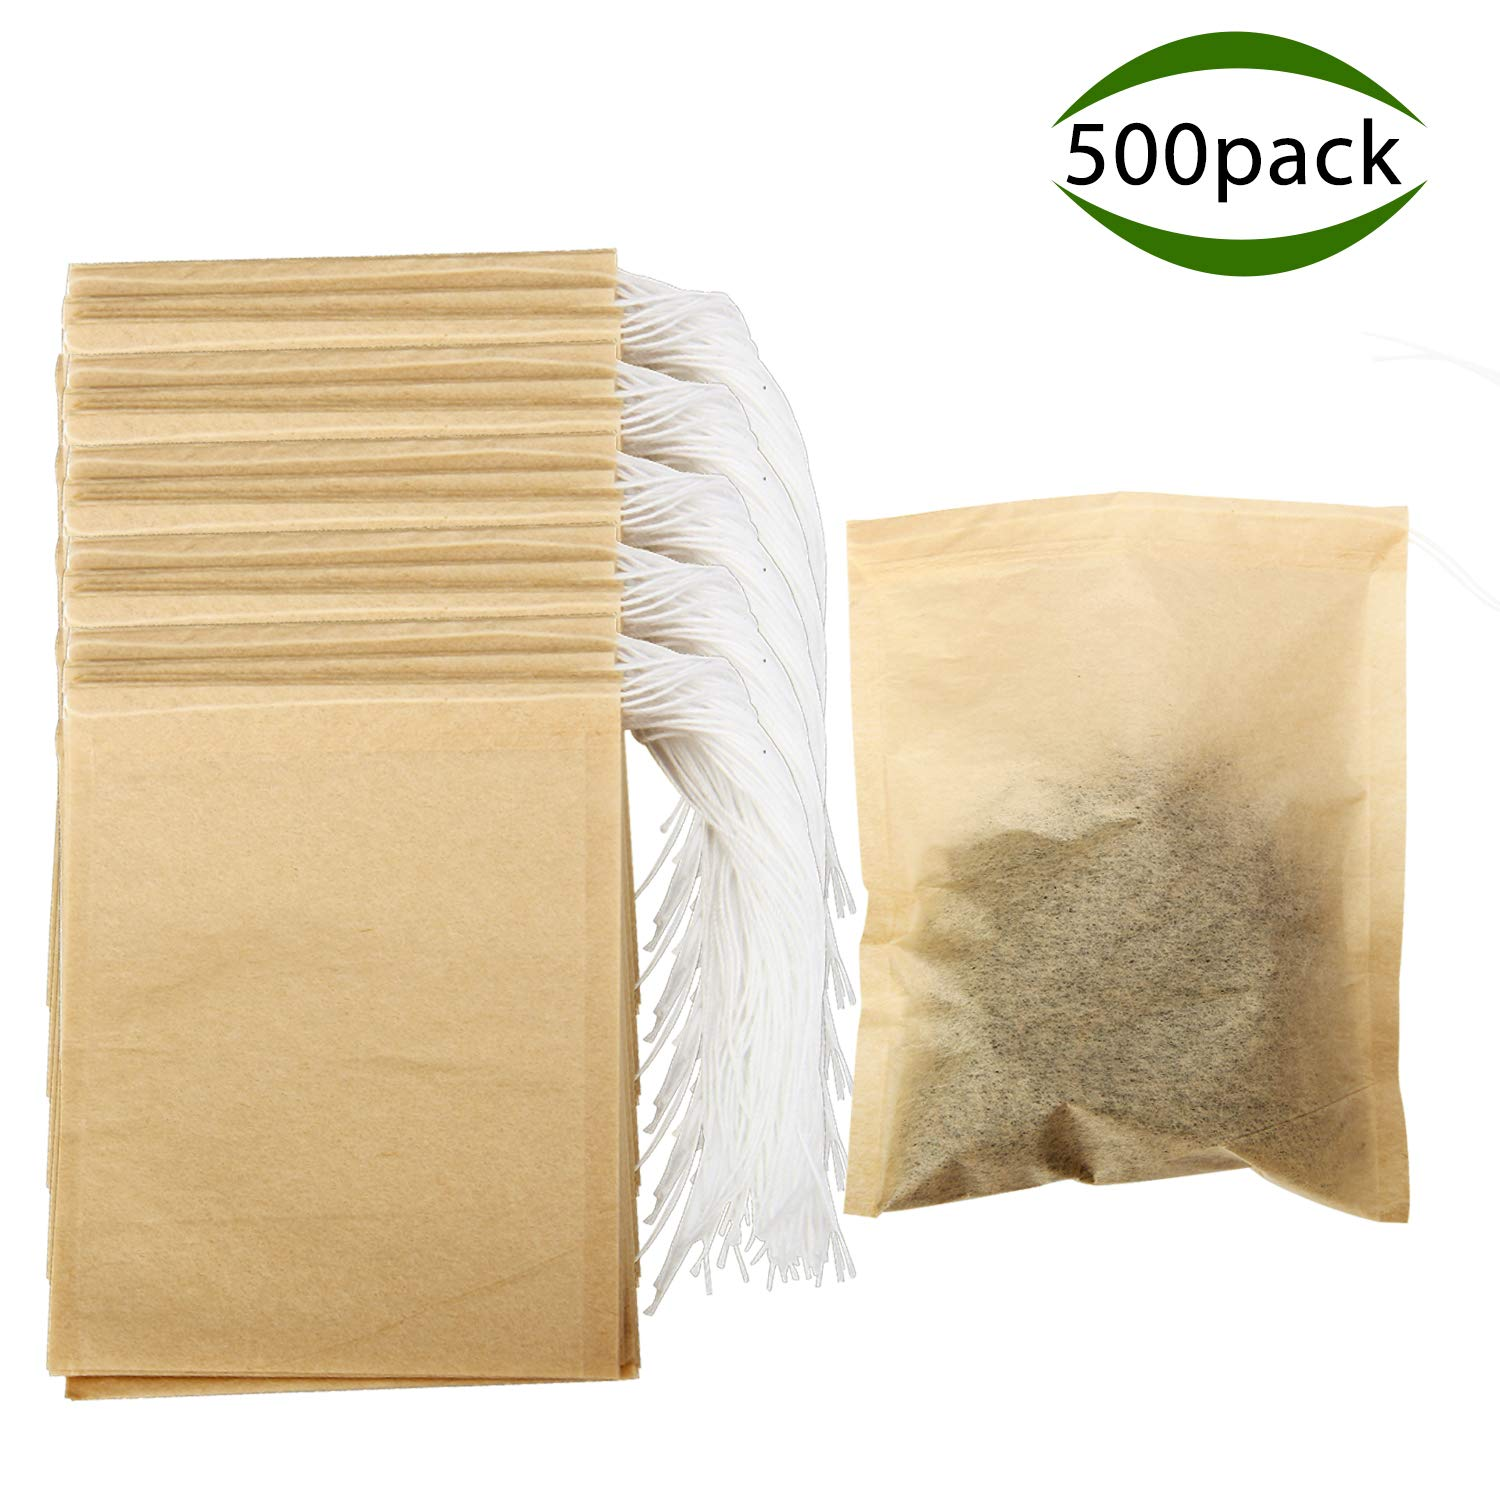 Tea Filter Bags, POZEAN Tea Bags for Loose Tea 500 pack Disposable with Drawstring and Safe Unbleached Natural, for Scented Tea, Herbal Medicine Package,Soup Package,etc (3.15×3.94 inch) by POZEAN